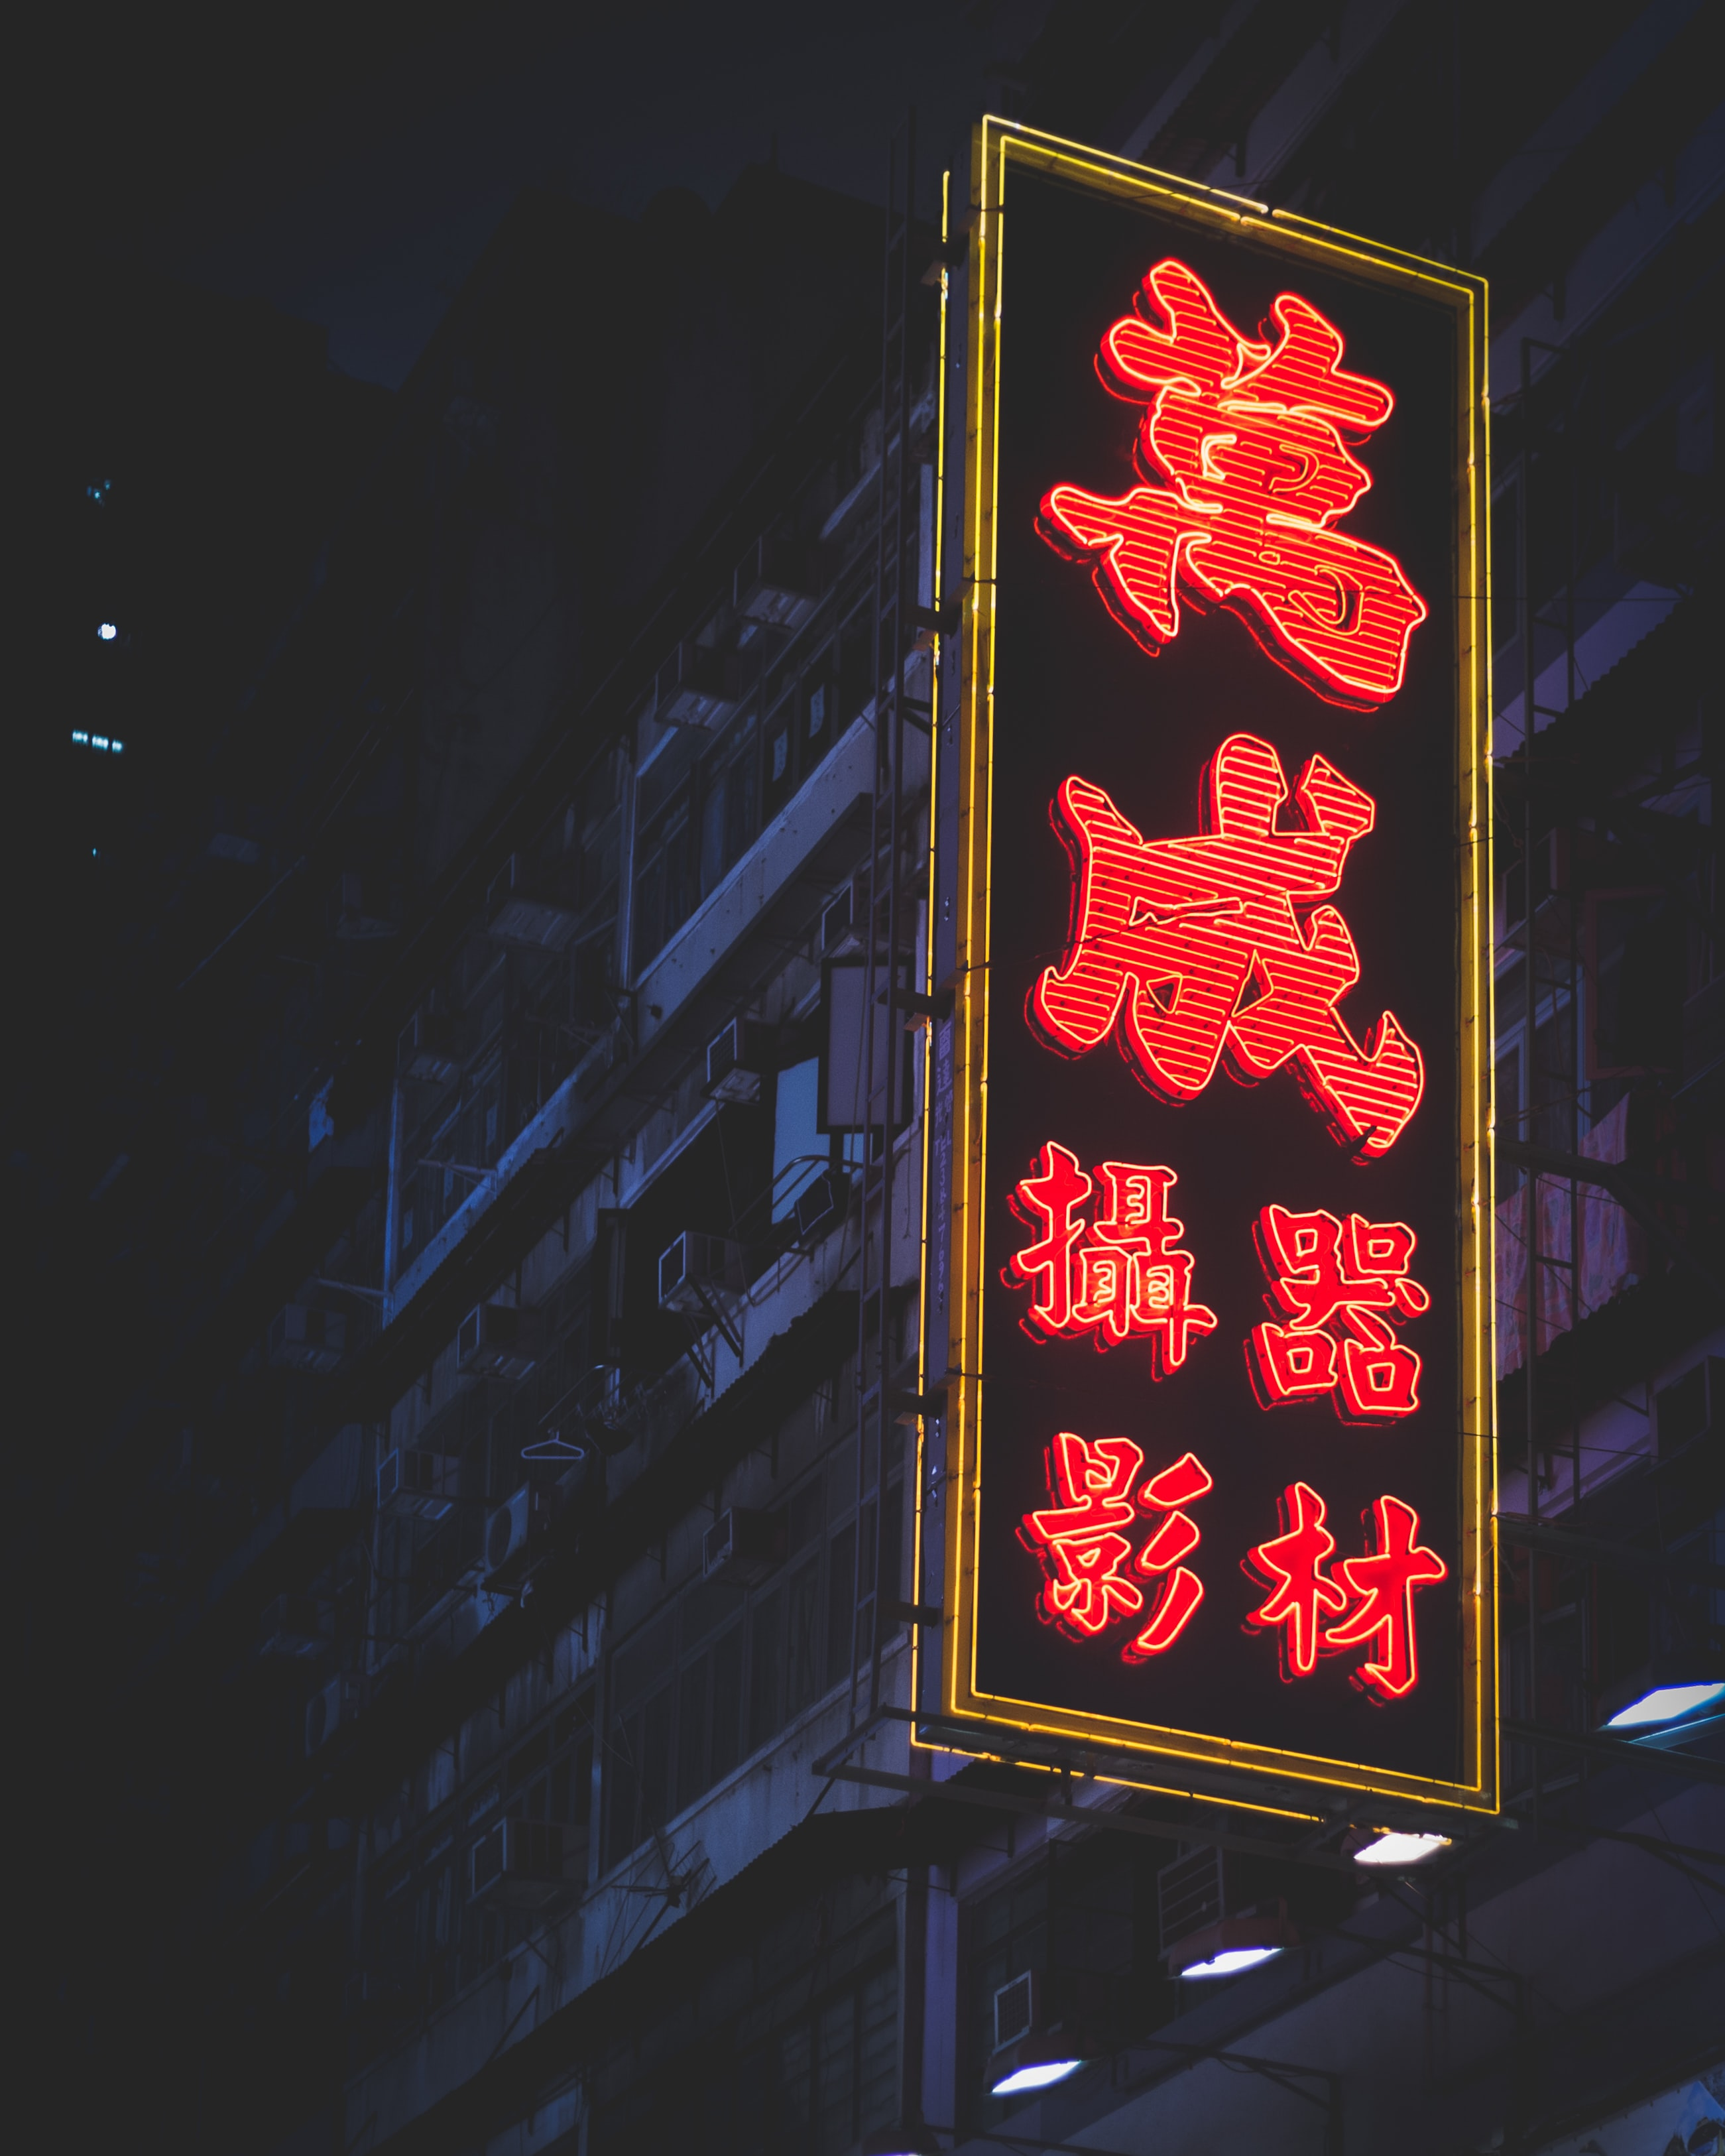 black and red signage with Kanji text